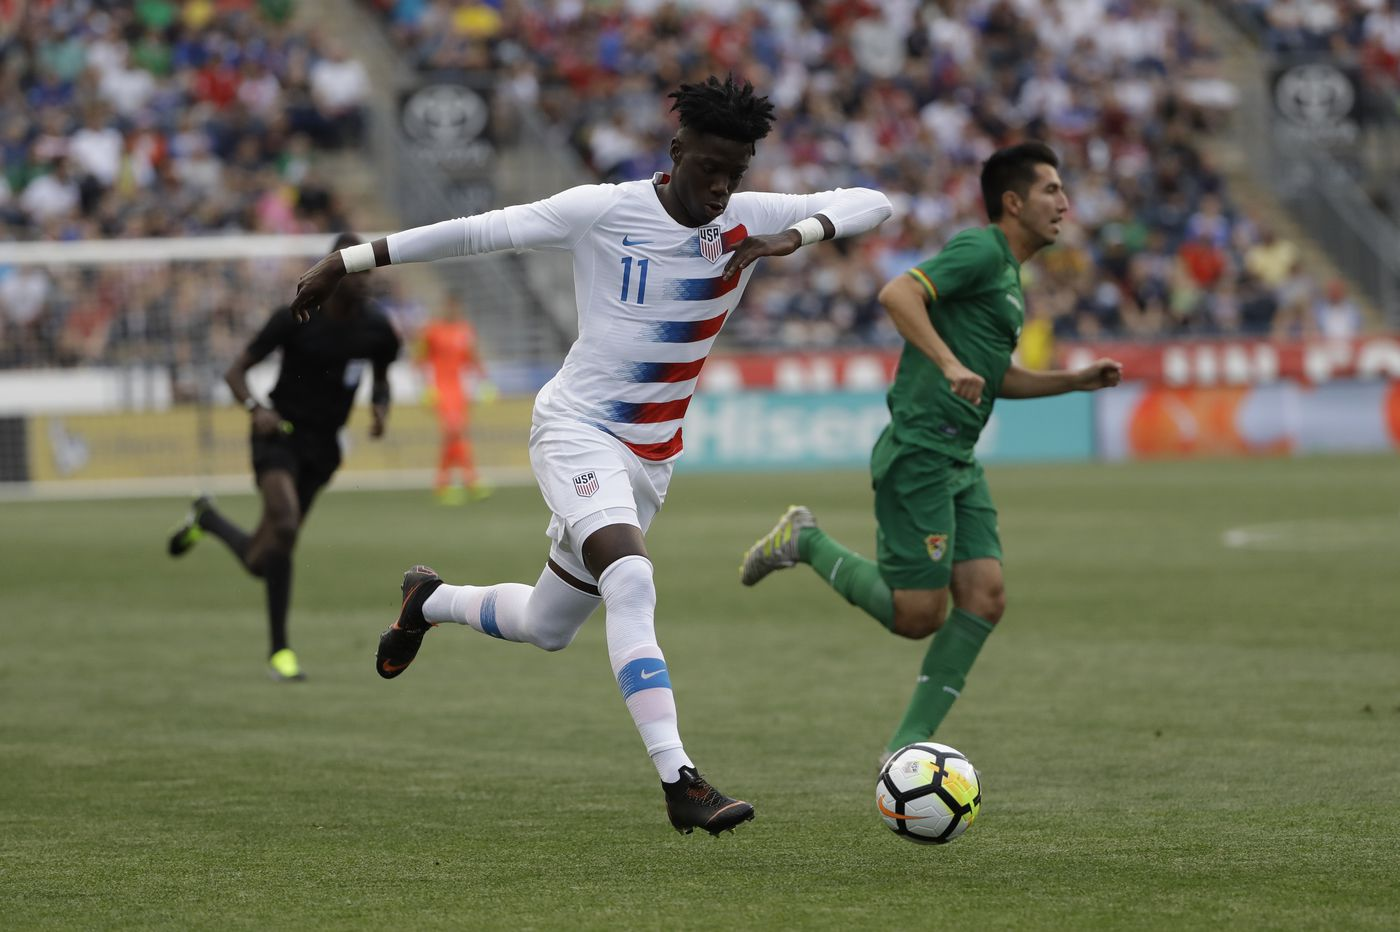 Led by Tim Weah and Paxton Pomykal, how far can the USMNT go at the under-20 World Cup?